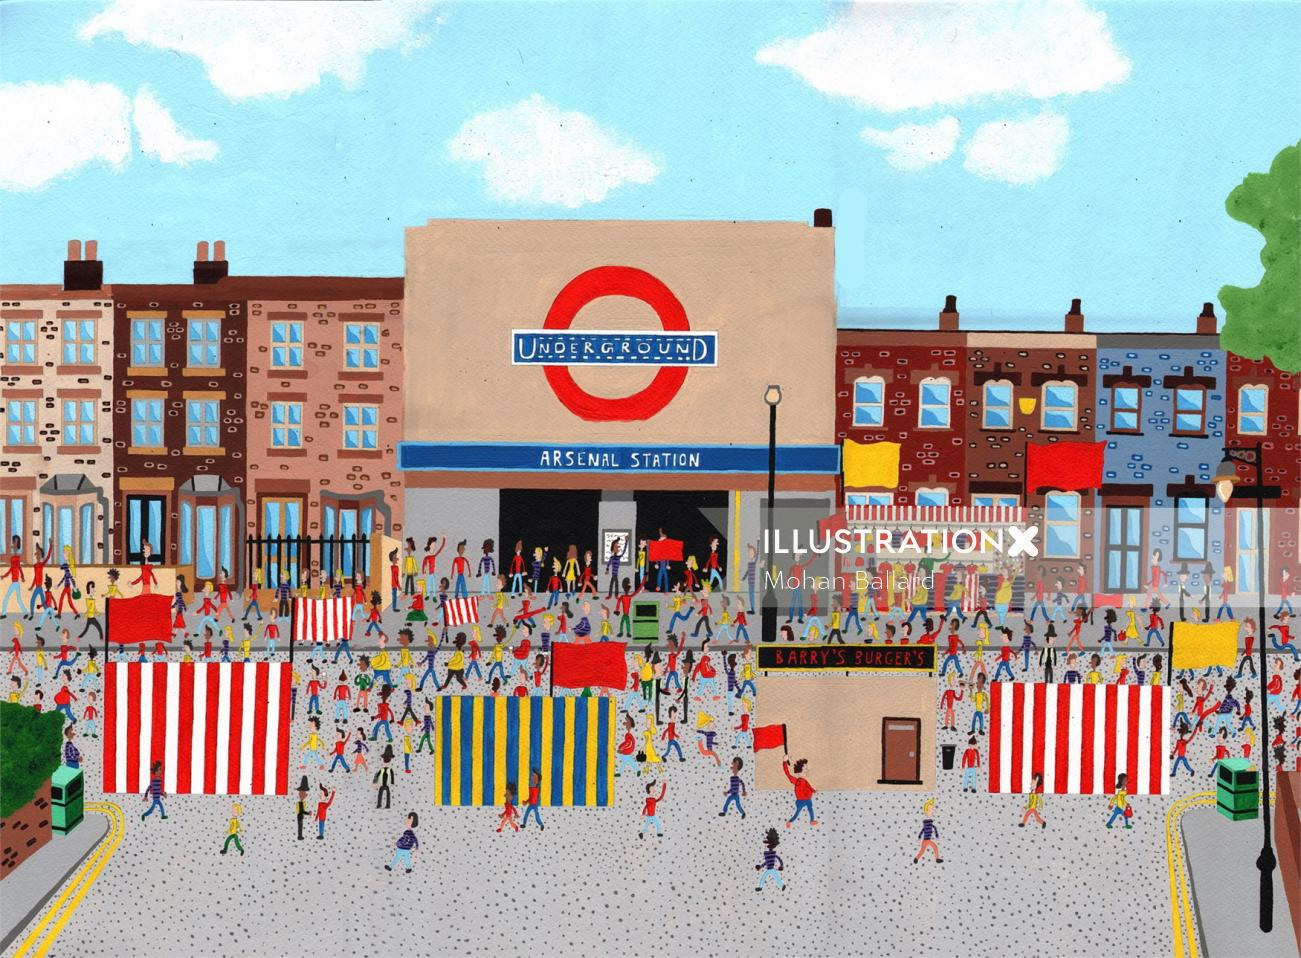 Illustration Arsenal Tube Station on match day by Mohan Ballard